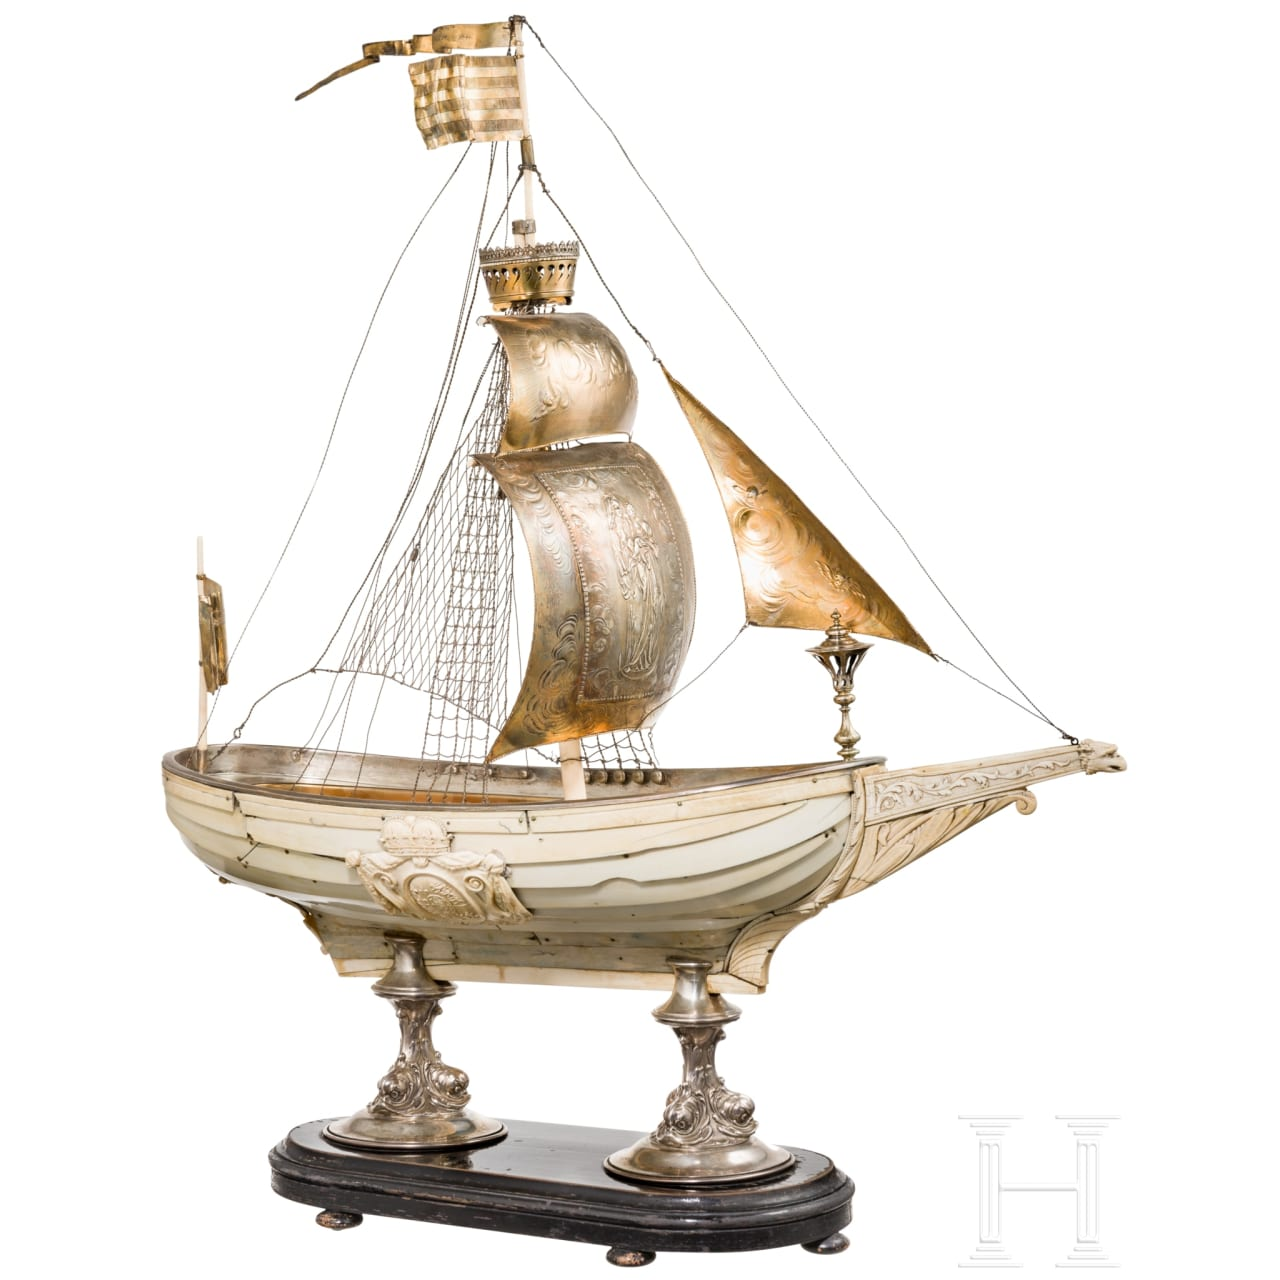 A magnificent French or German table centrepiece in the shape of a large ivory ship, 1st half of the 19th century